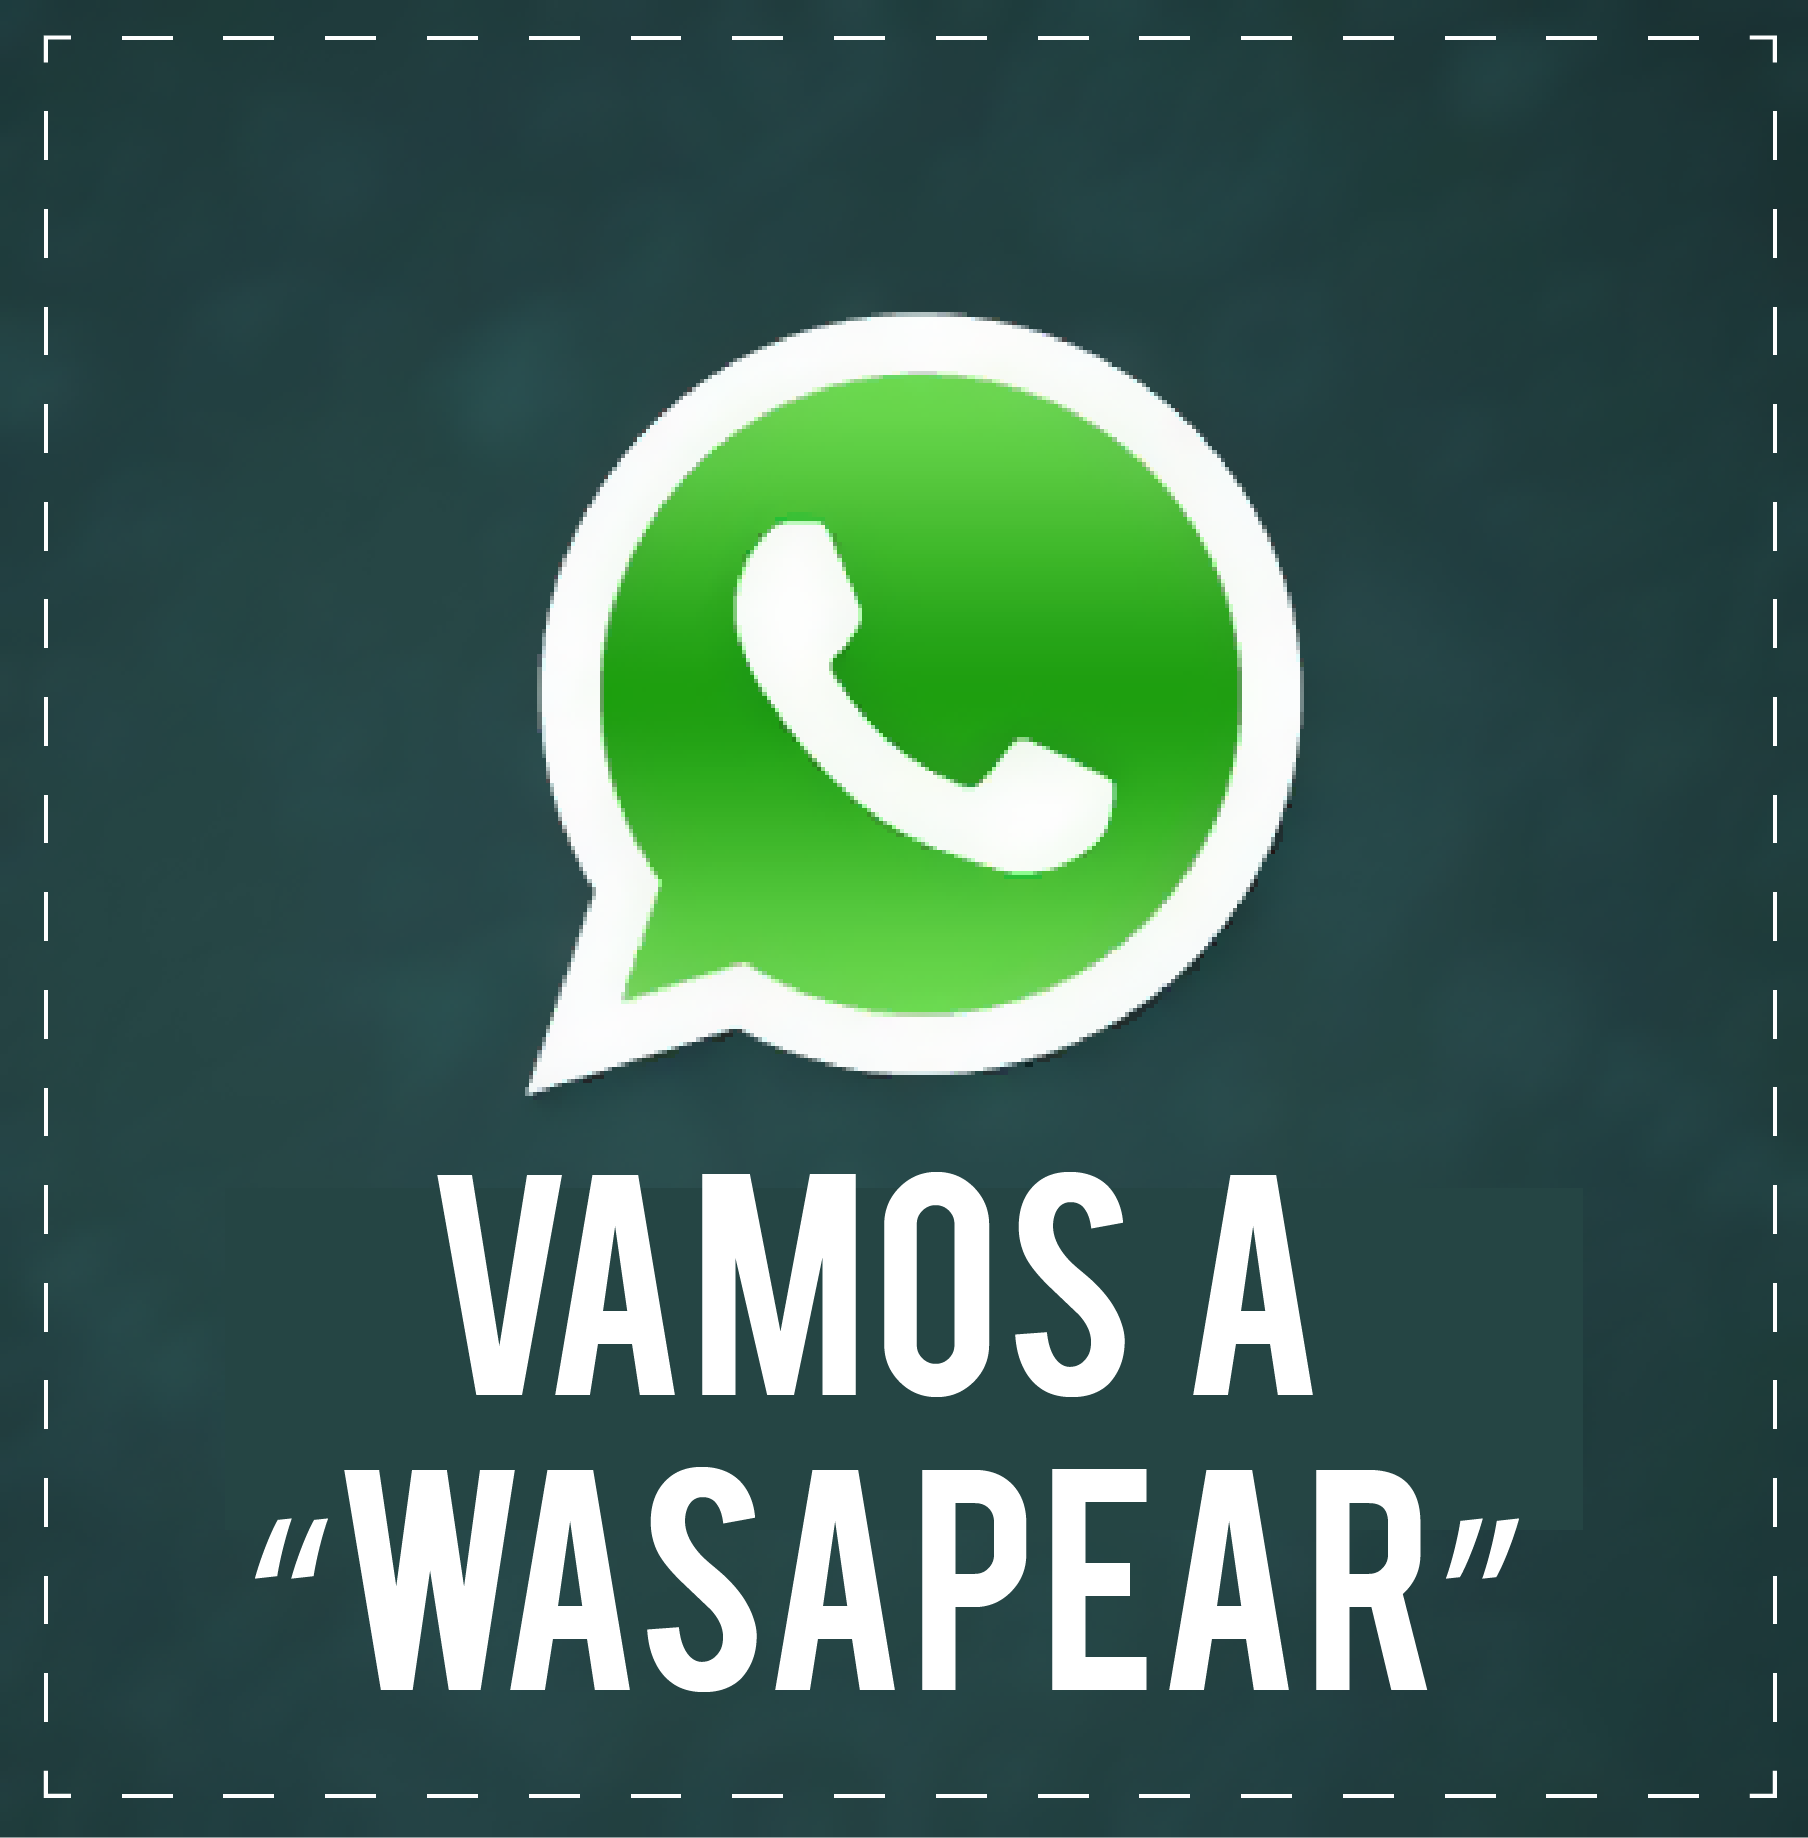 wasapeare